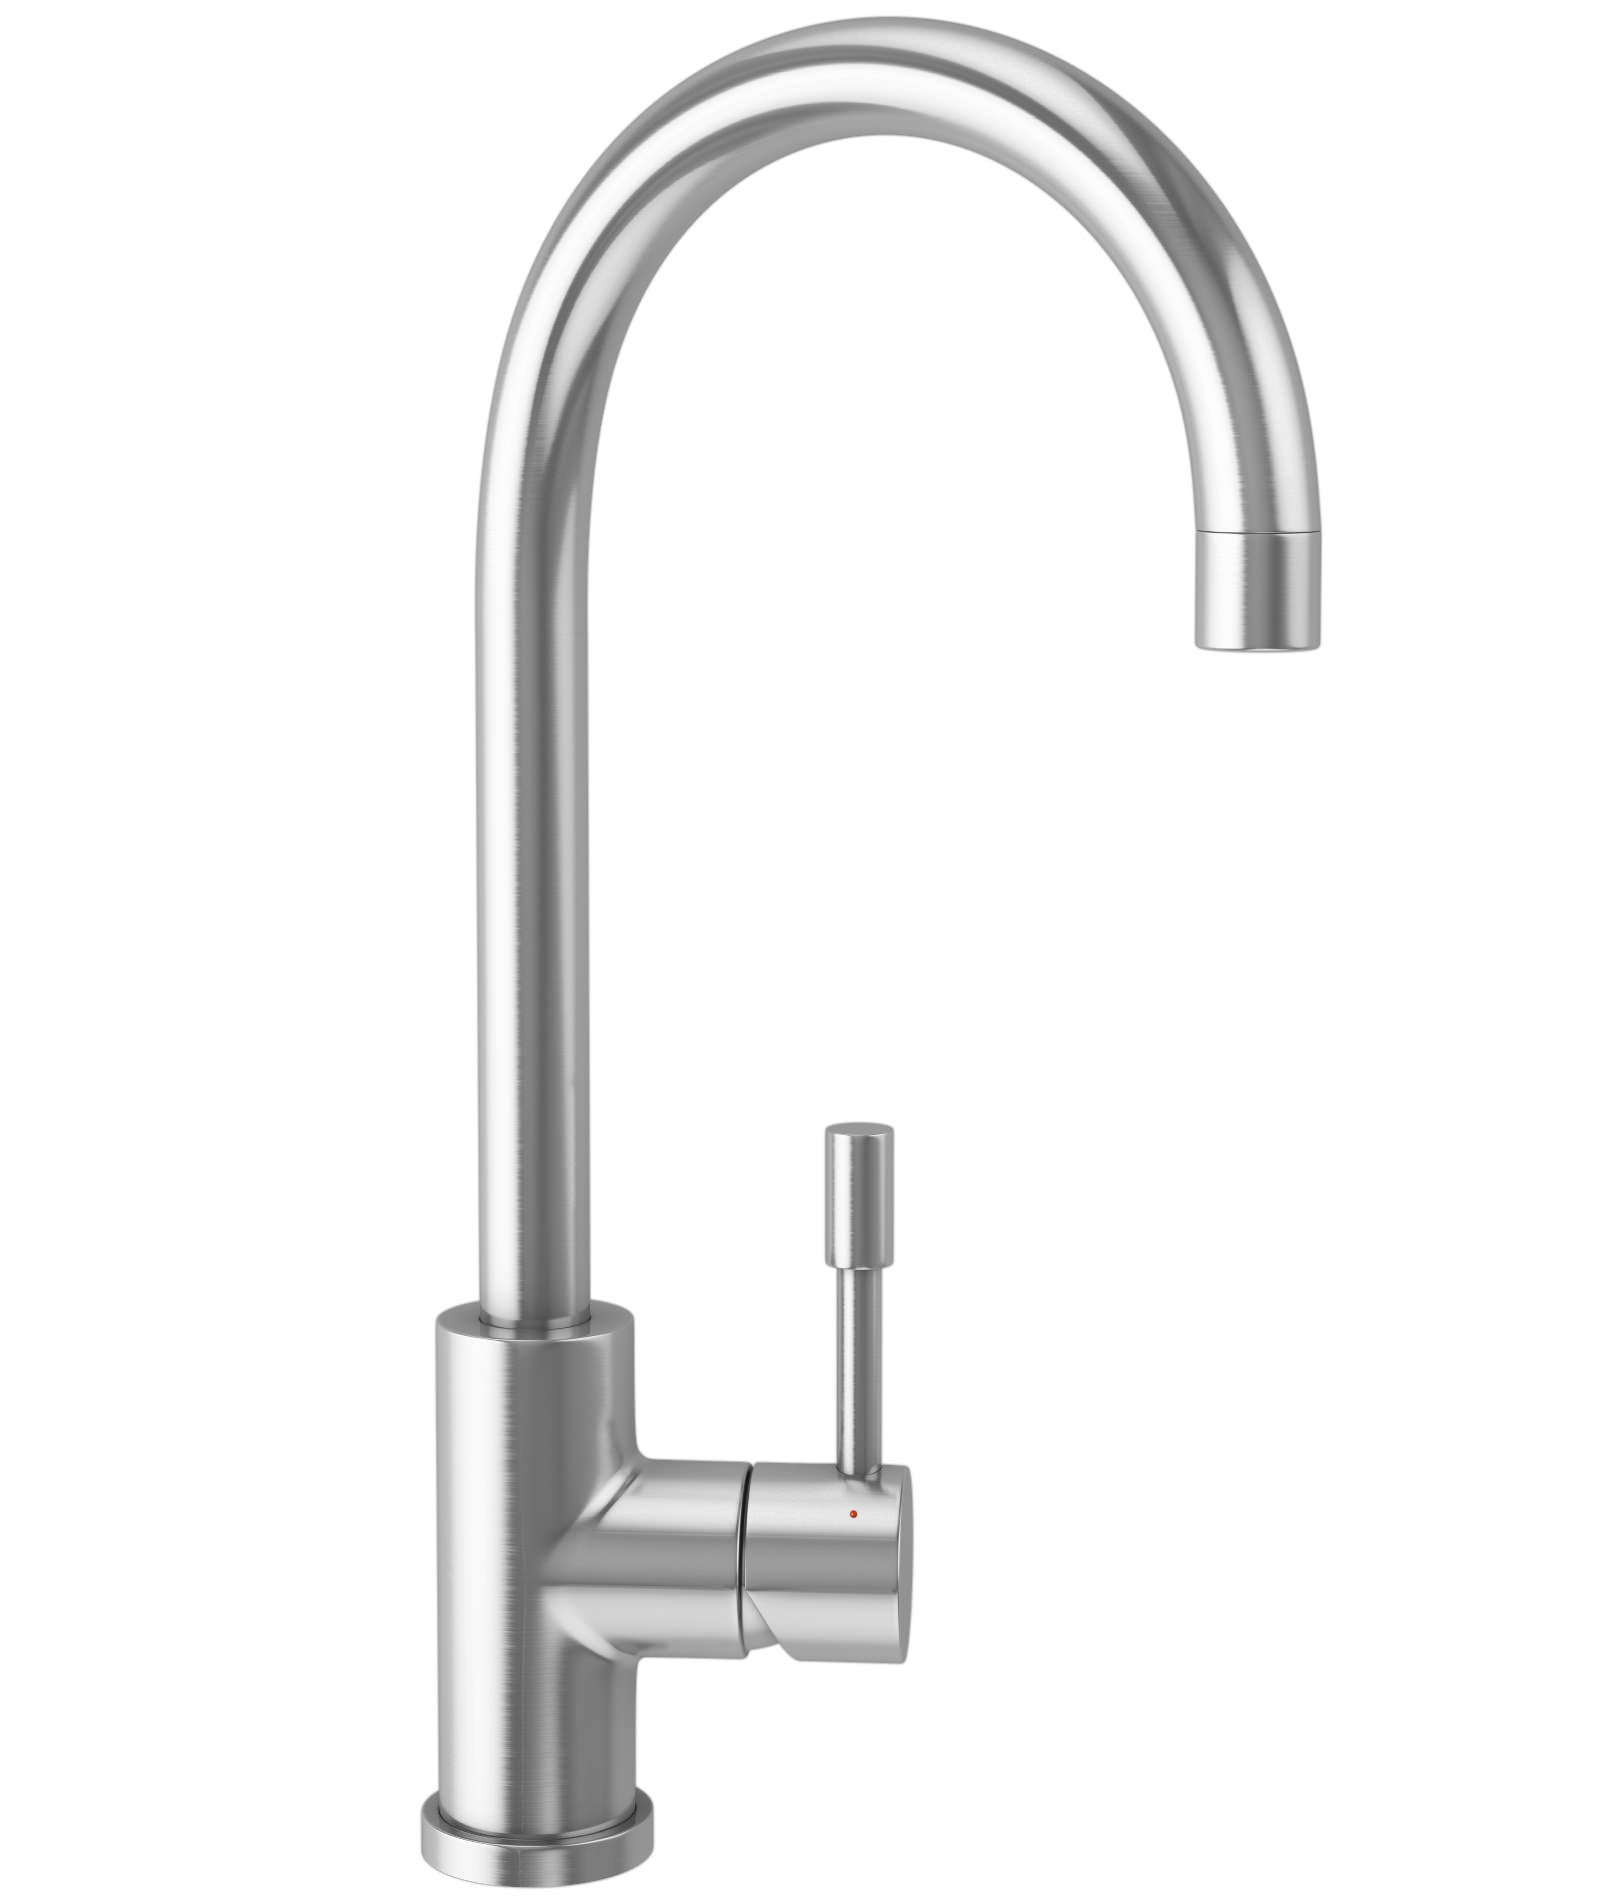 qs supplies taps kitchen mixer taps franke eos kitchen sink mixer tap ...